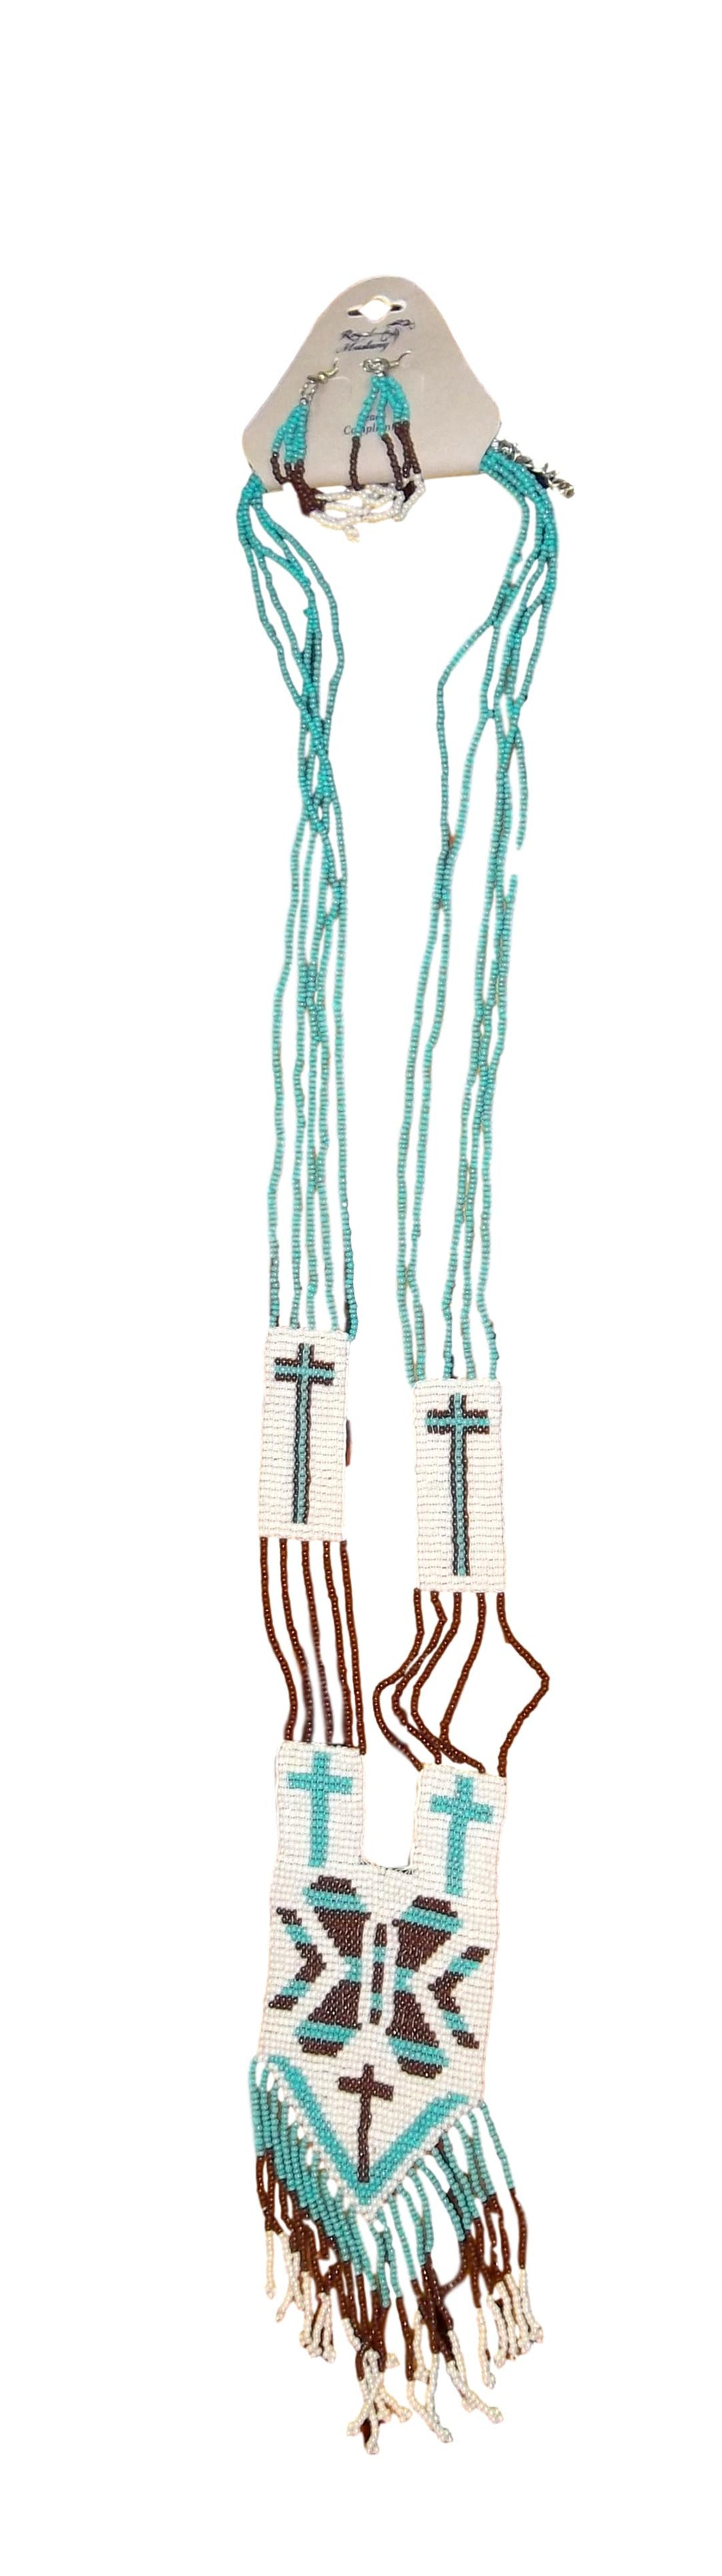 Long Teal/Brown/White Necklace